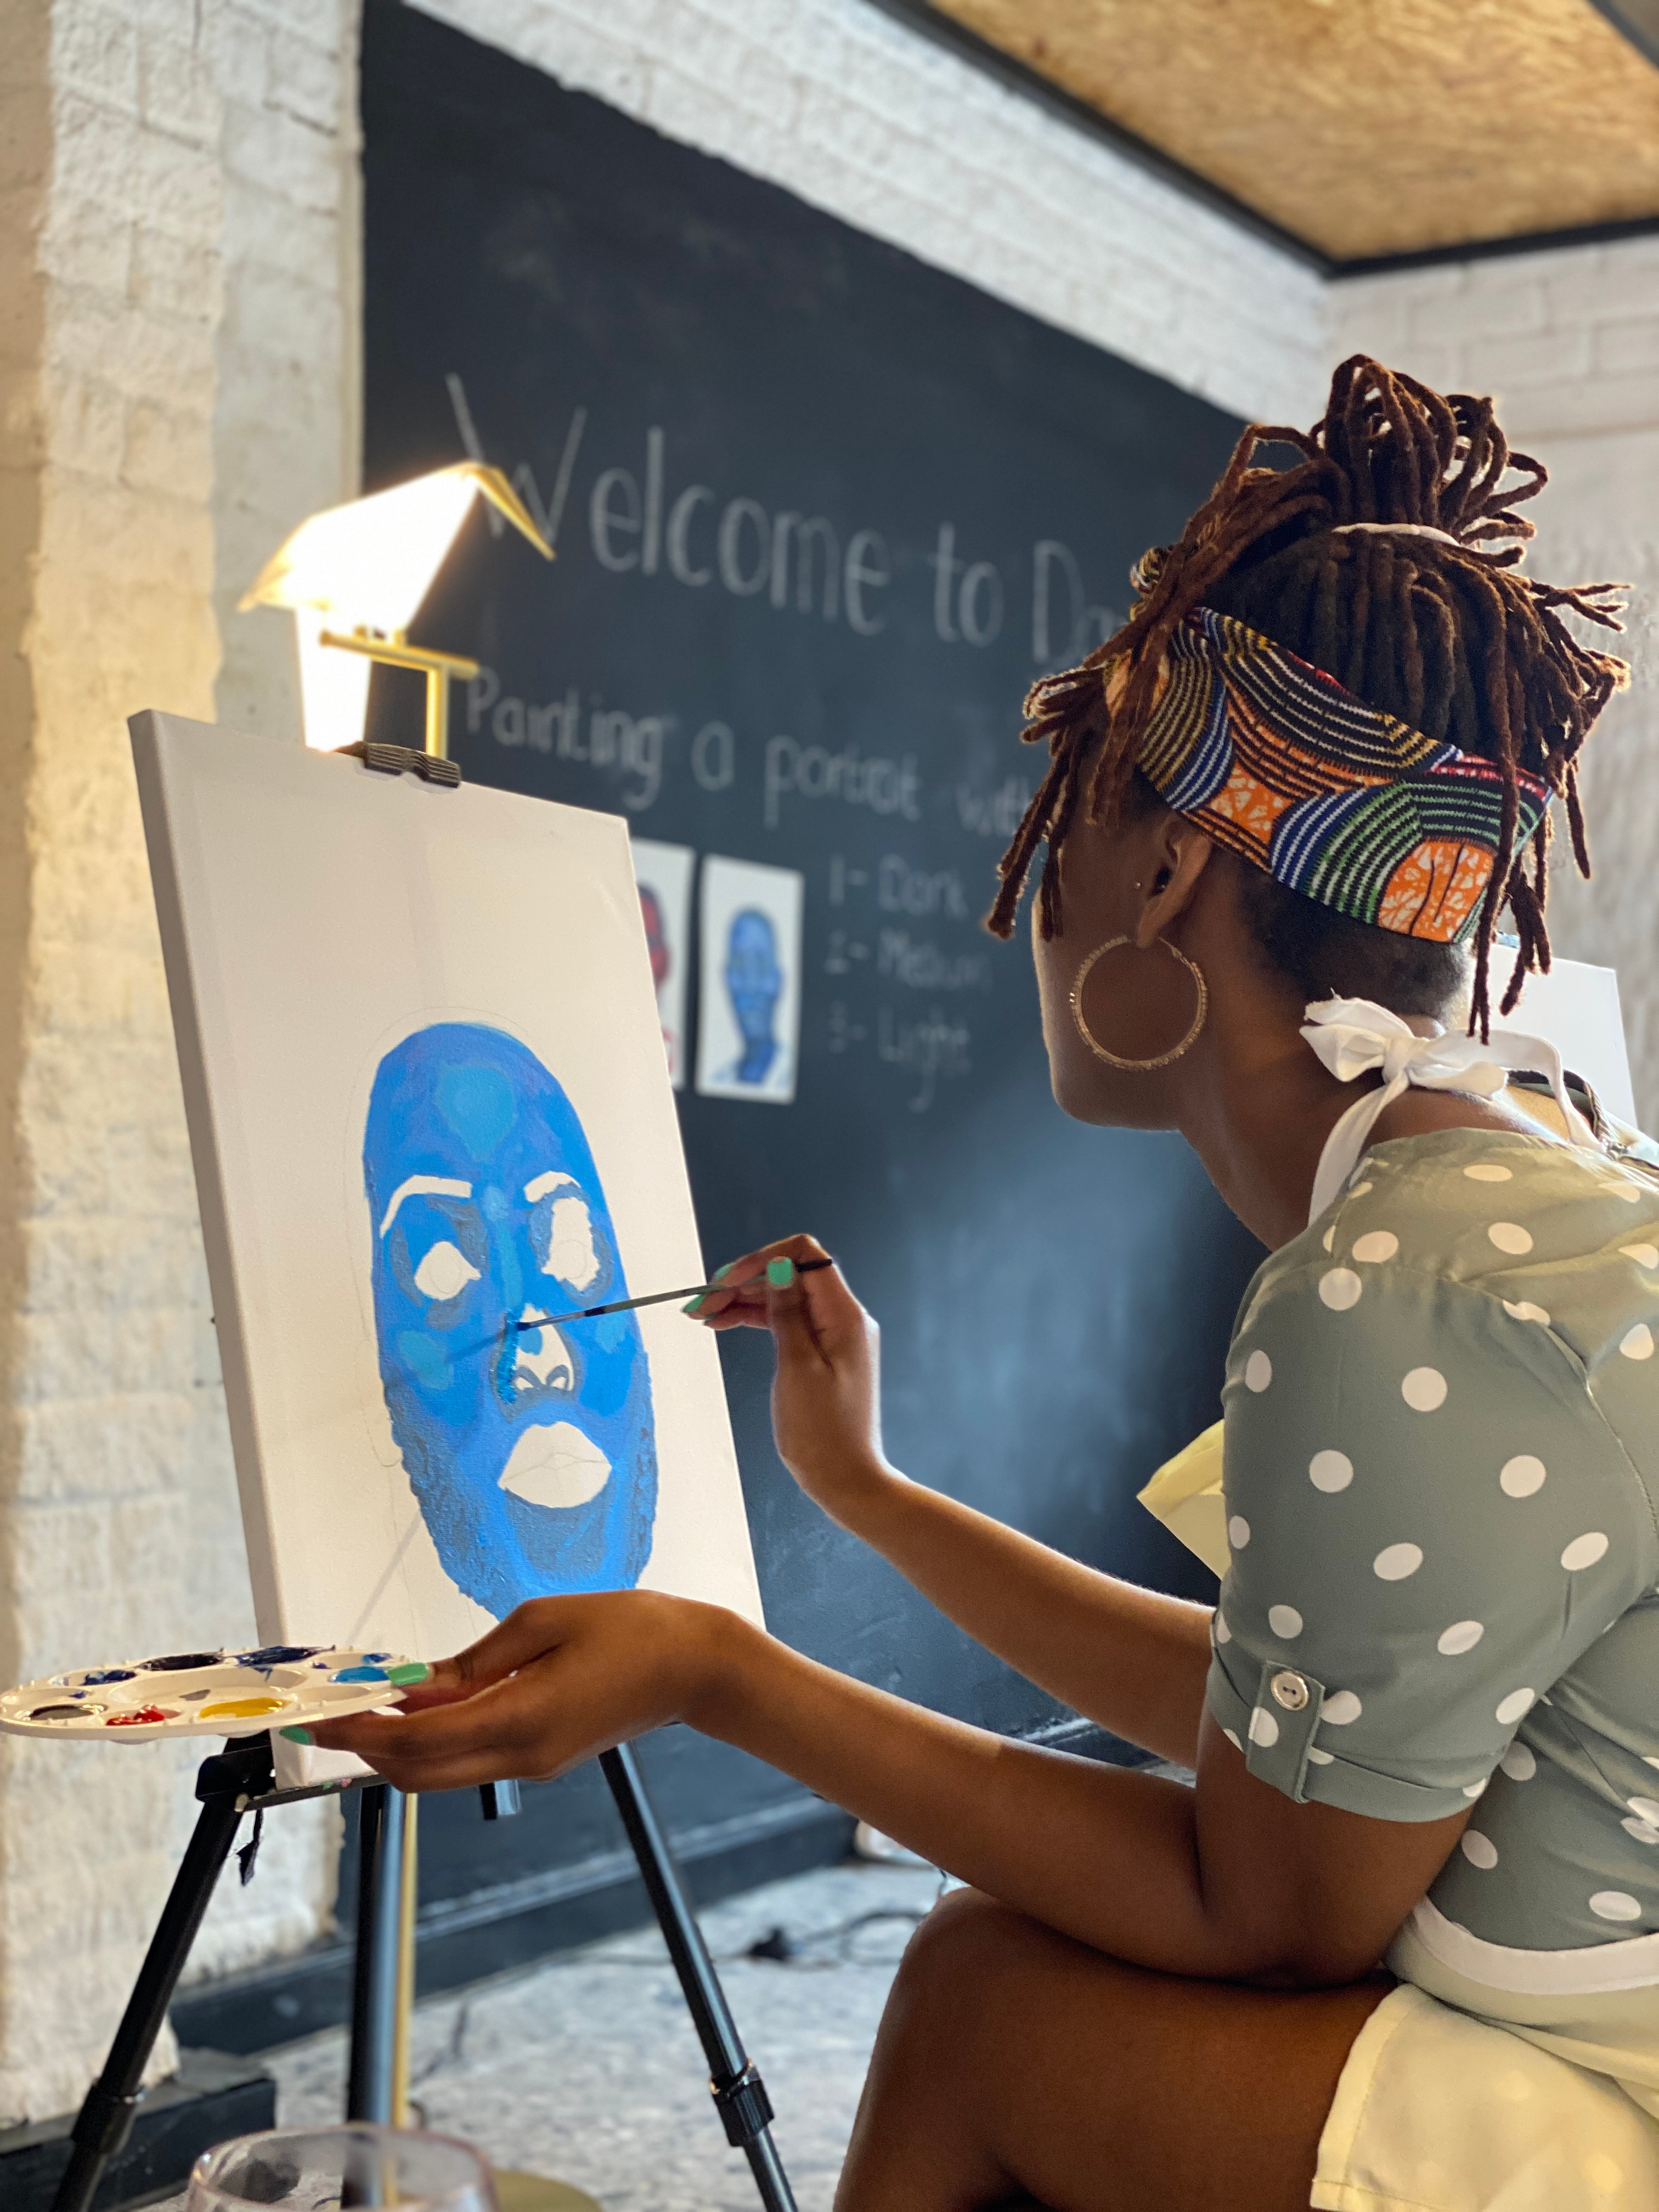 Paint and Sip experience